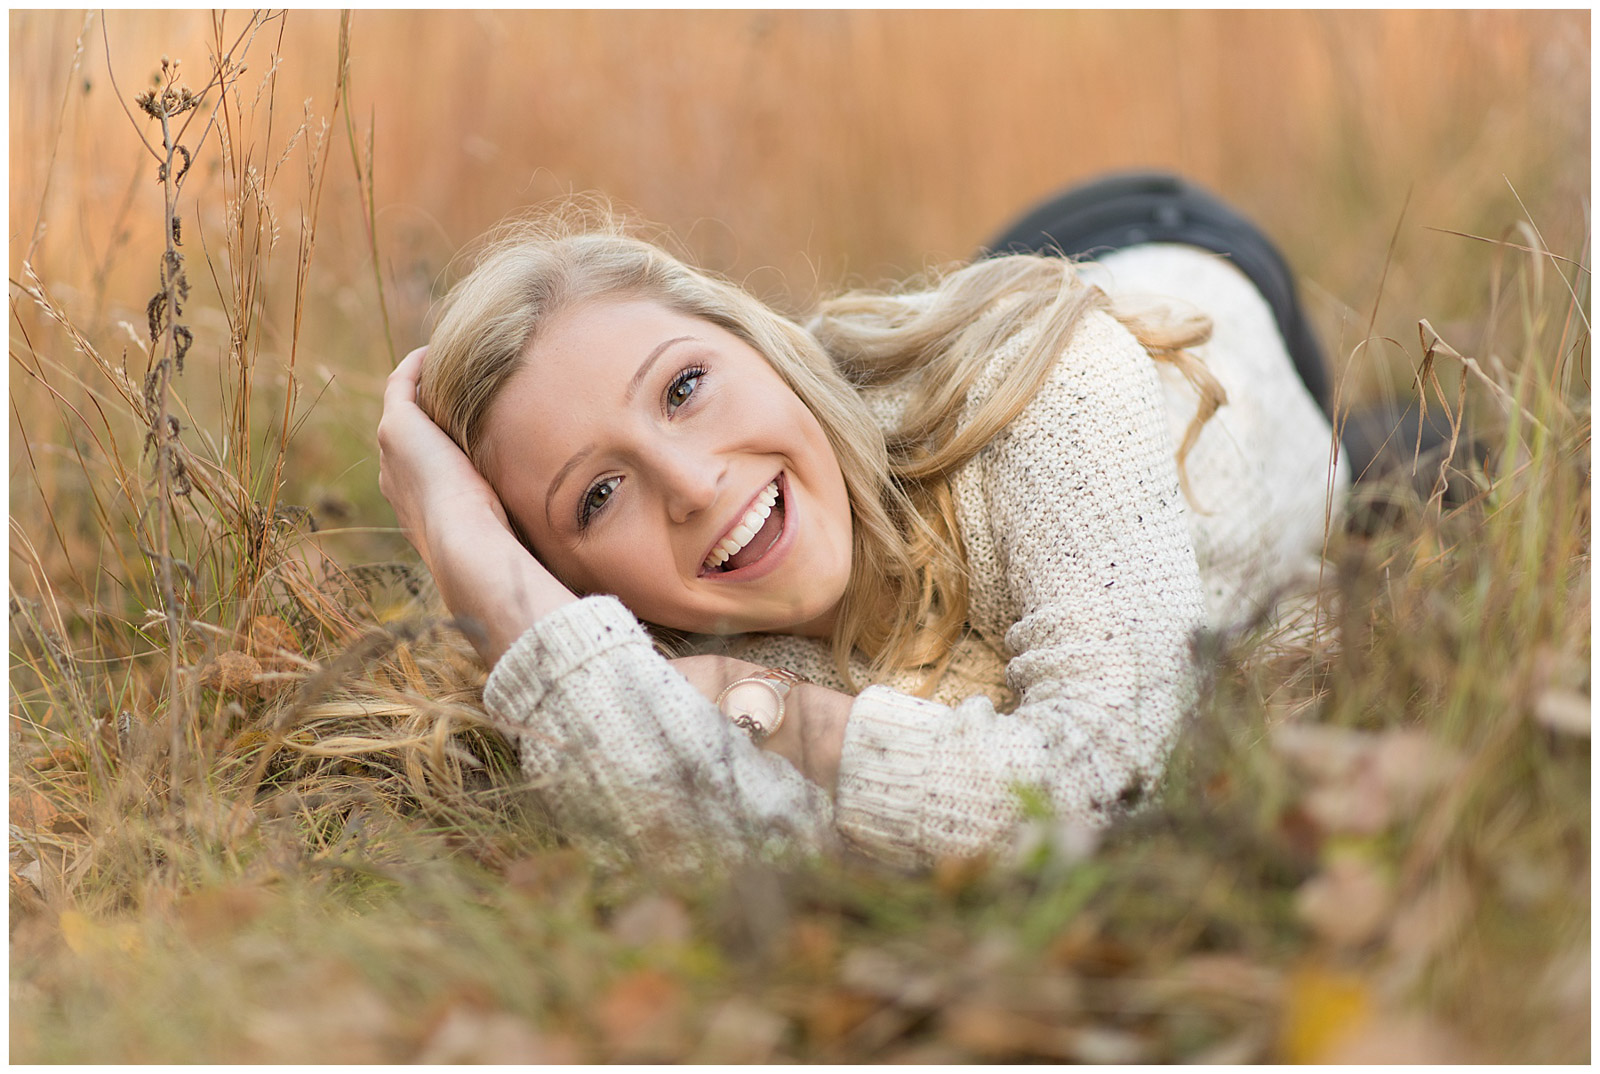 girl smiling laughing in grass outside emily and erin drew esquared photography